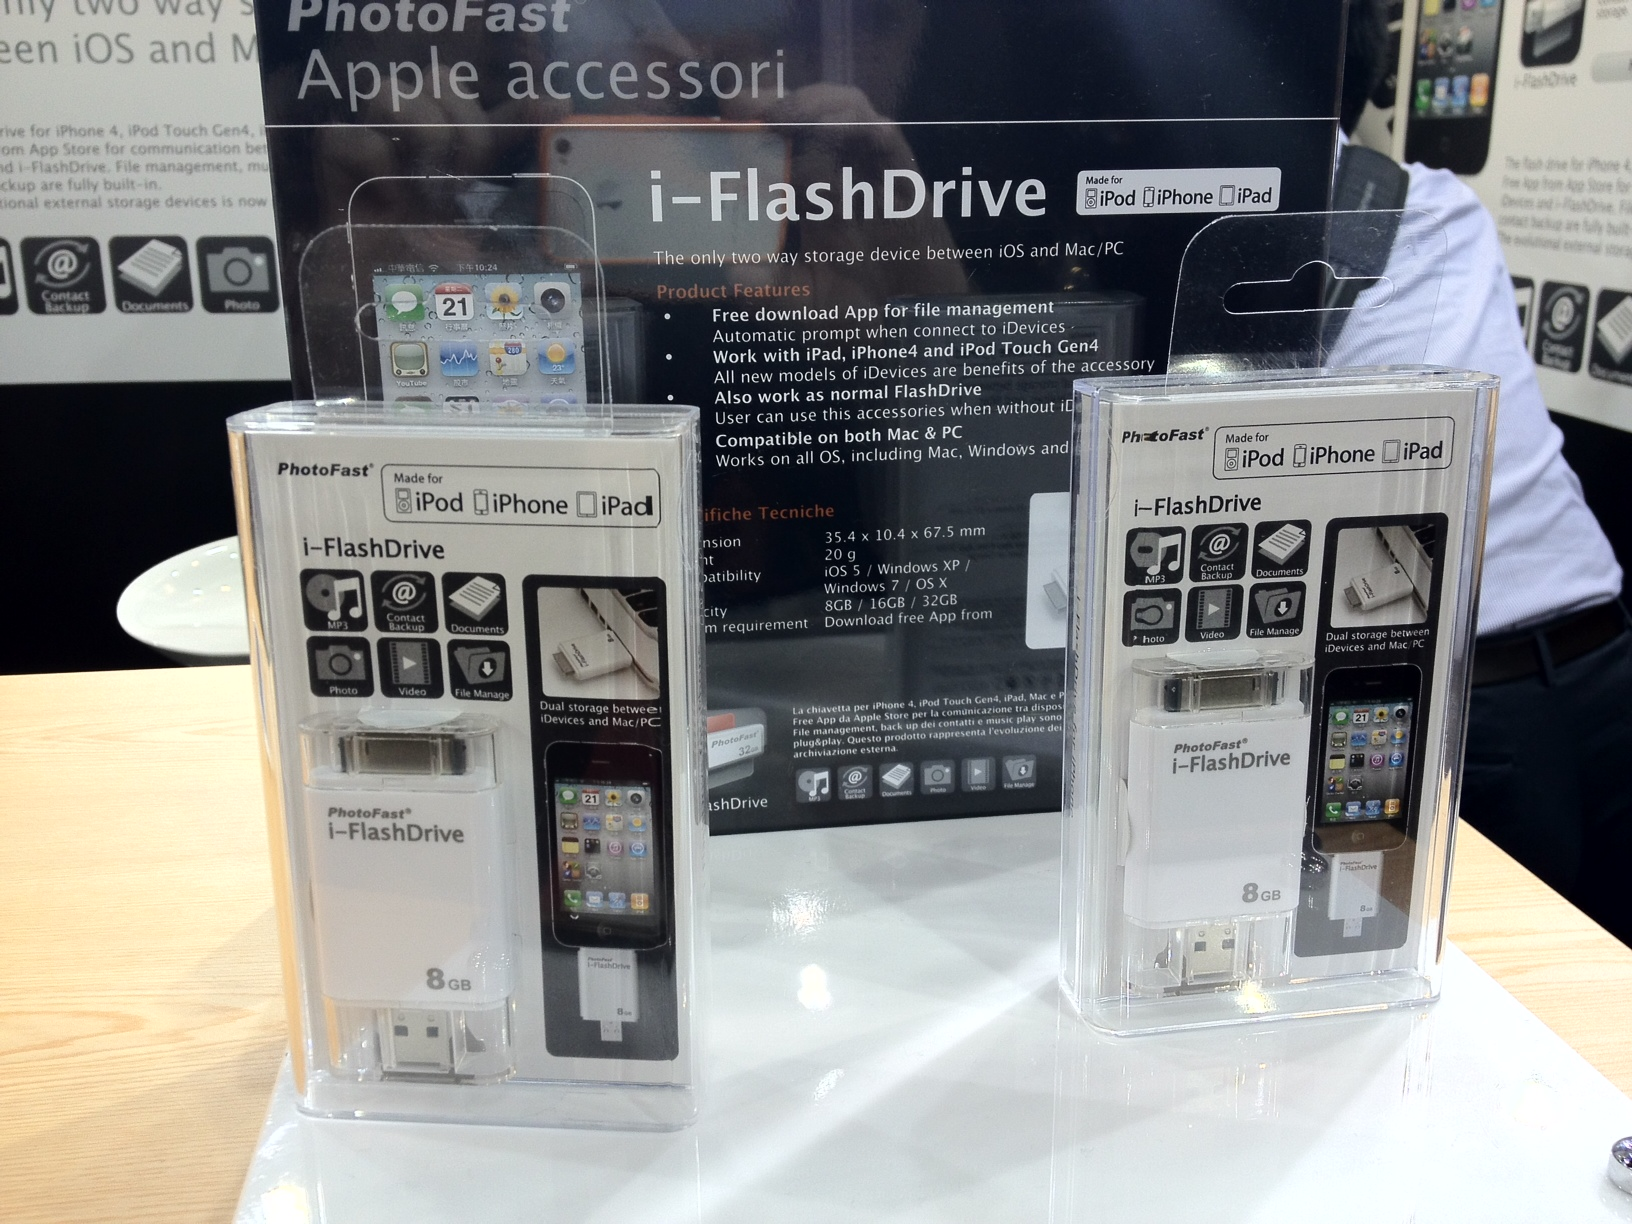 CES 2012: Browse Files On Your iPad With The PhotoFast i-FlashDrive